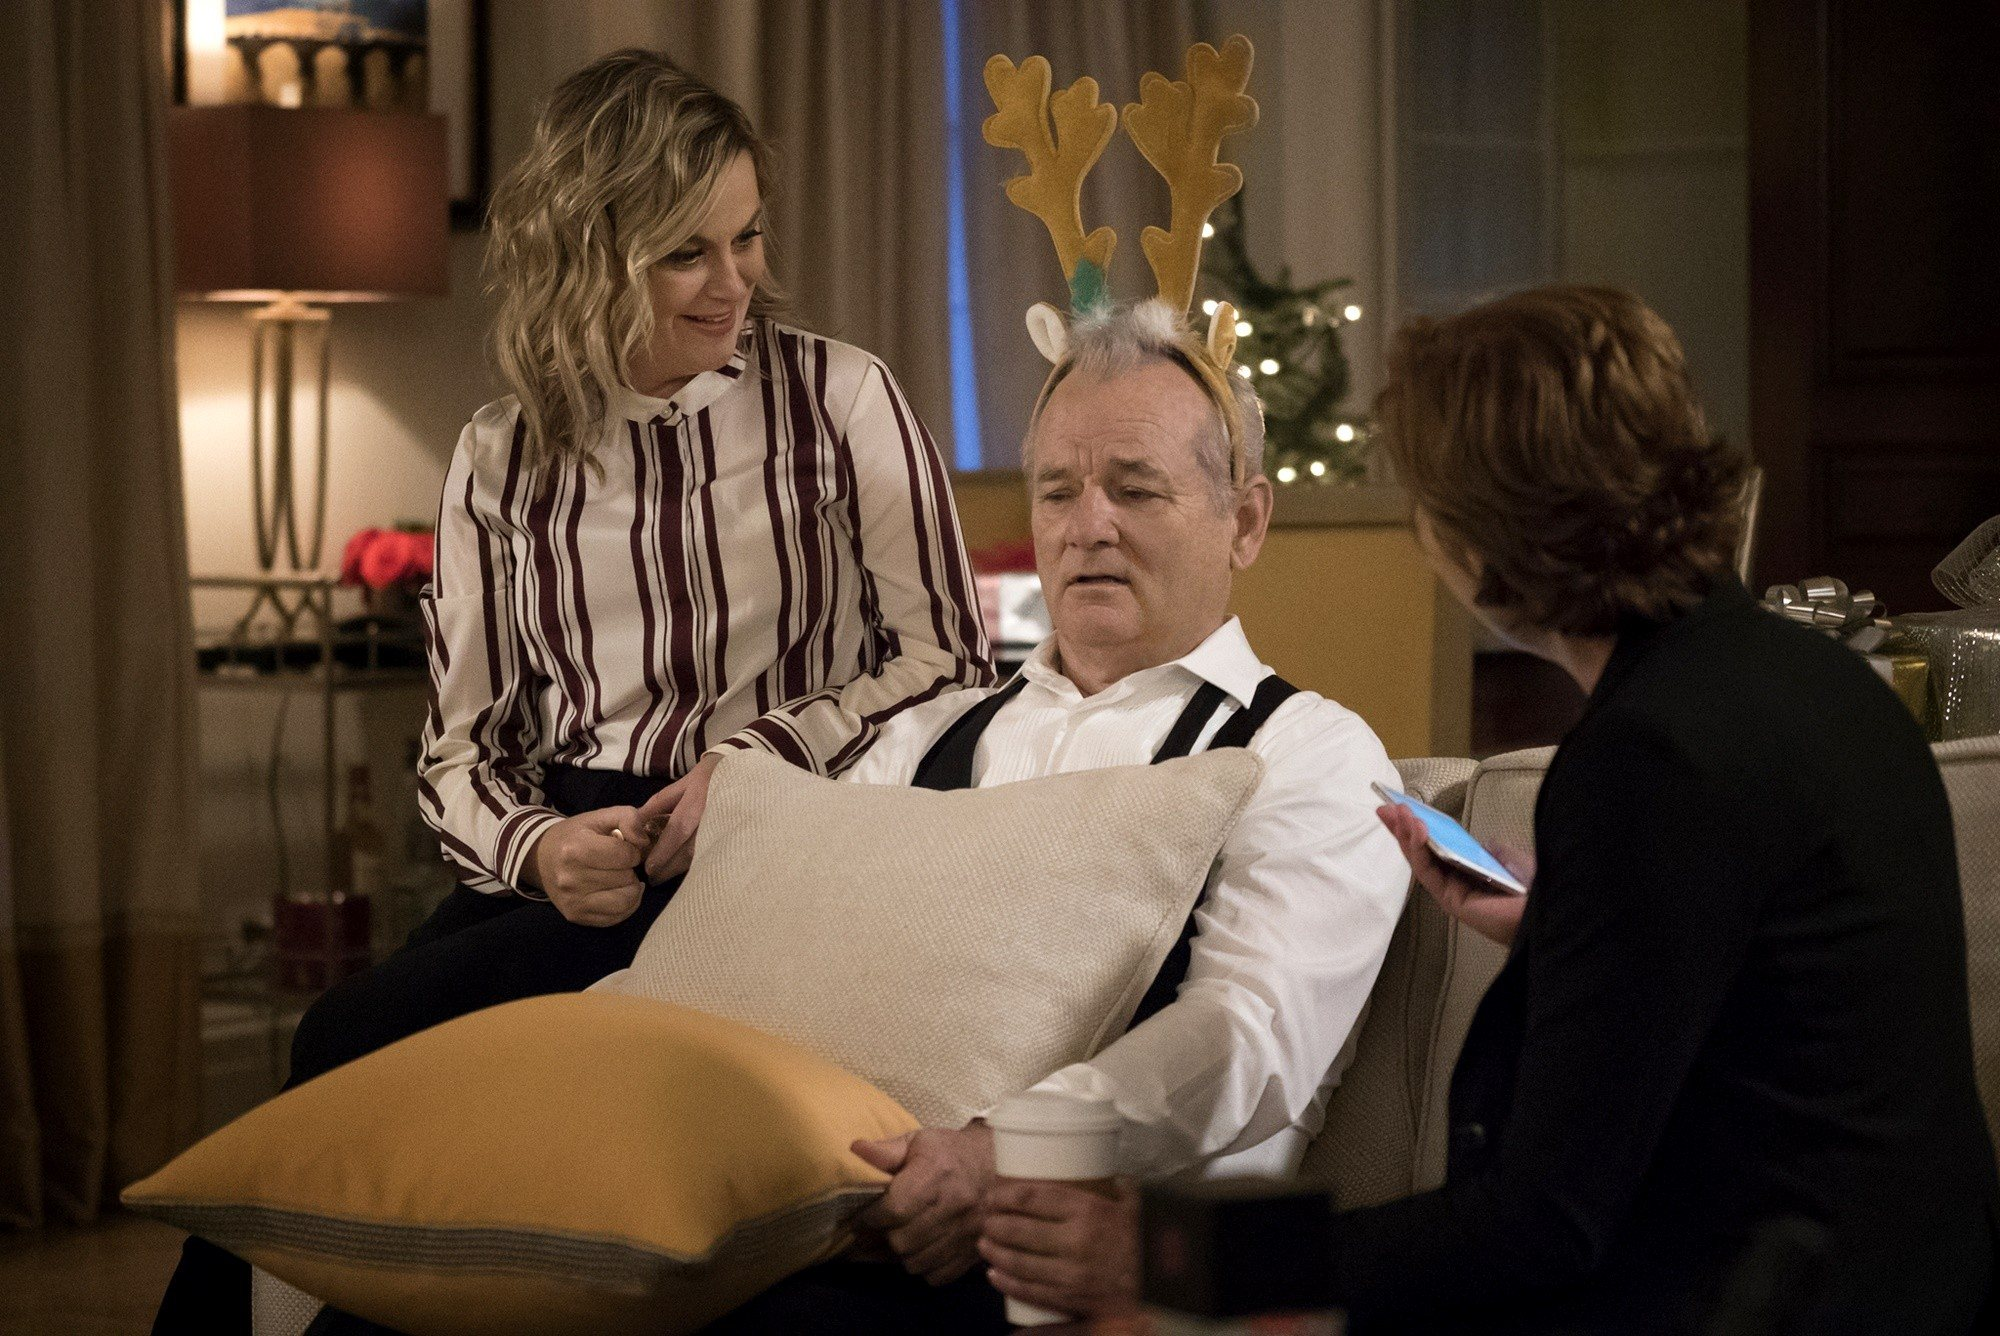 A Very Murray Christmas: Amy Poehler e Bill Murray in una foto dello speciale di Natale